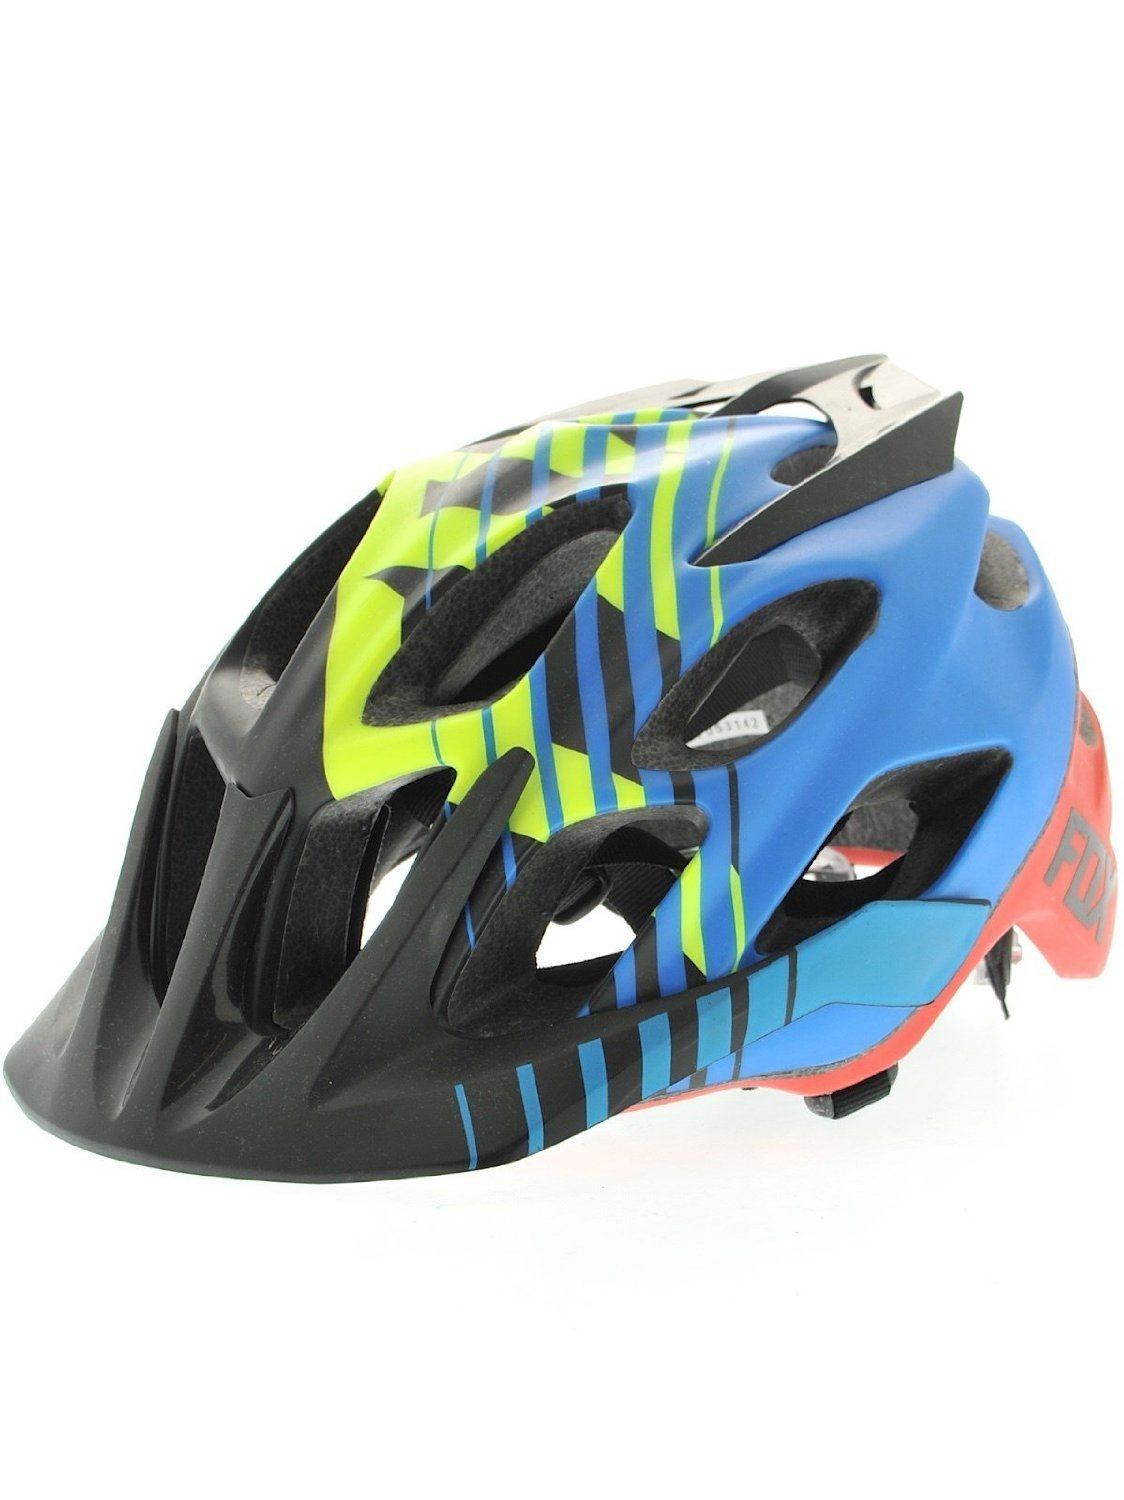 Blue Fox Racing Bicycle Helmets